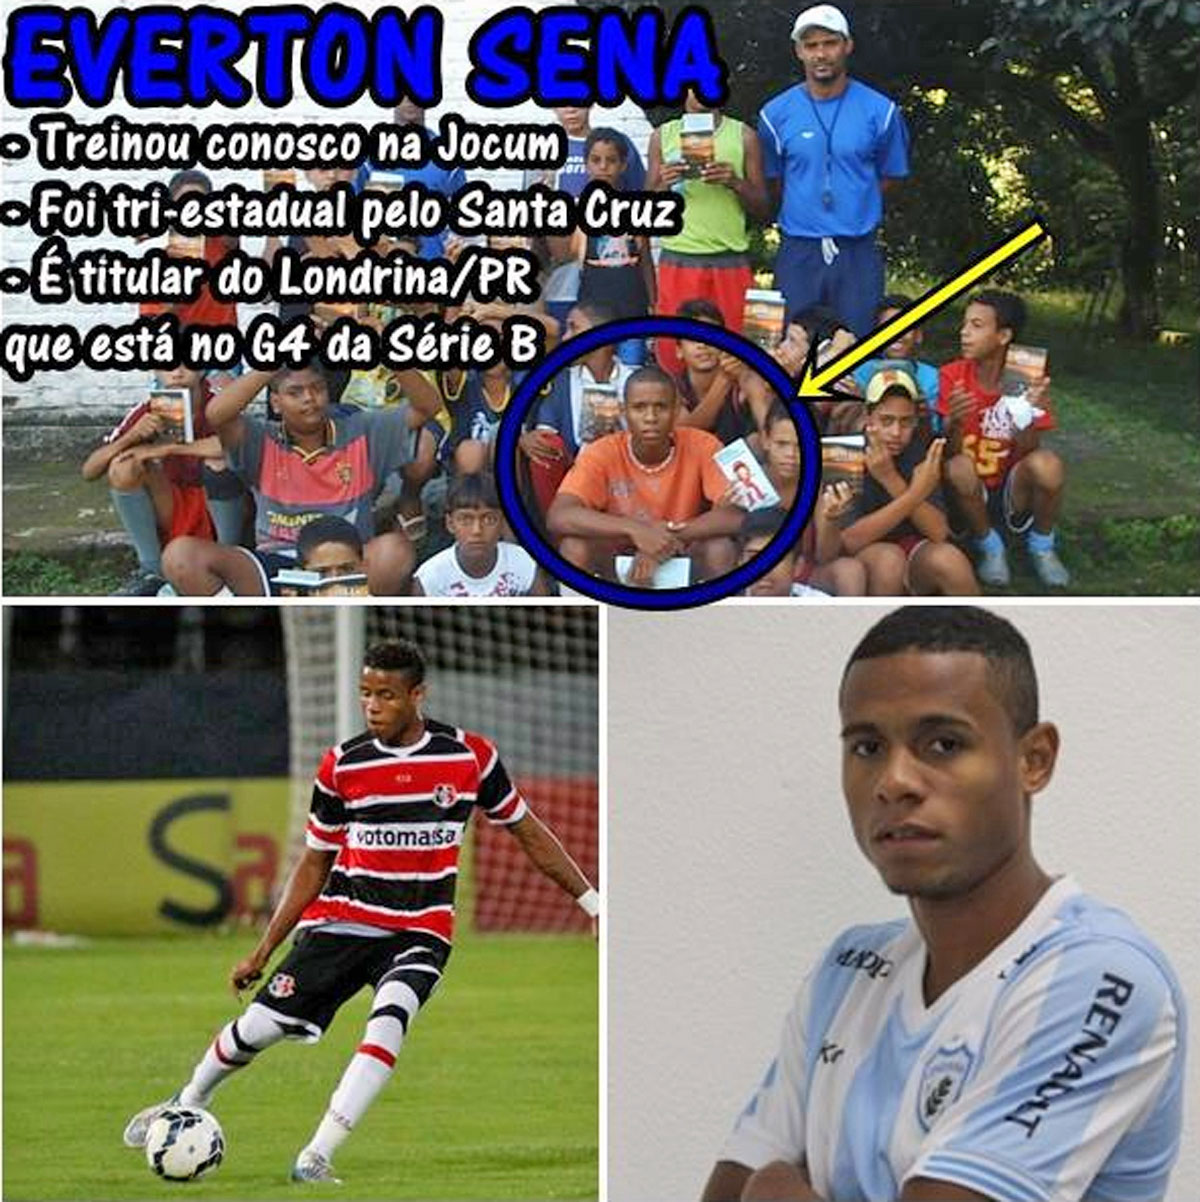 Everton Sena. Professional soccer player who started with us at Show de Bola